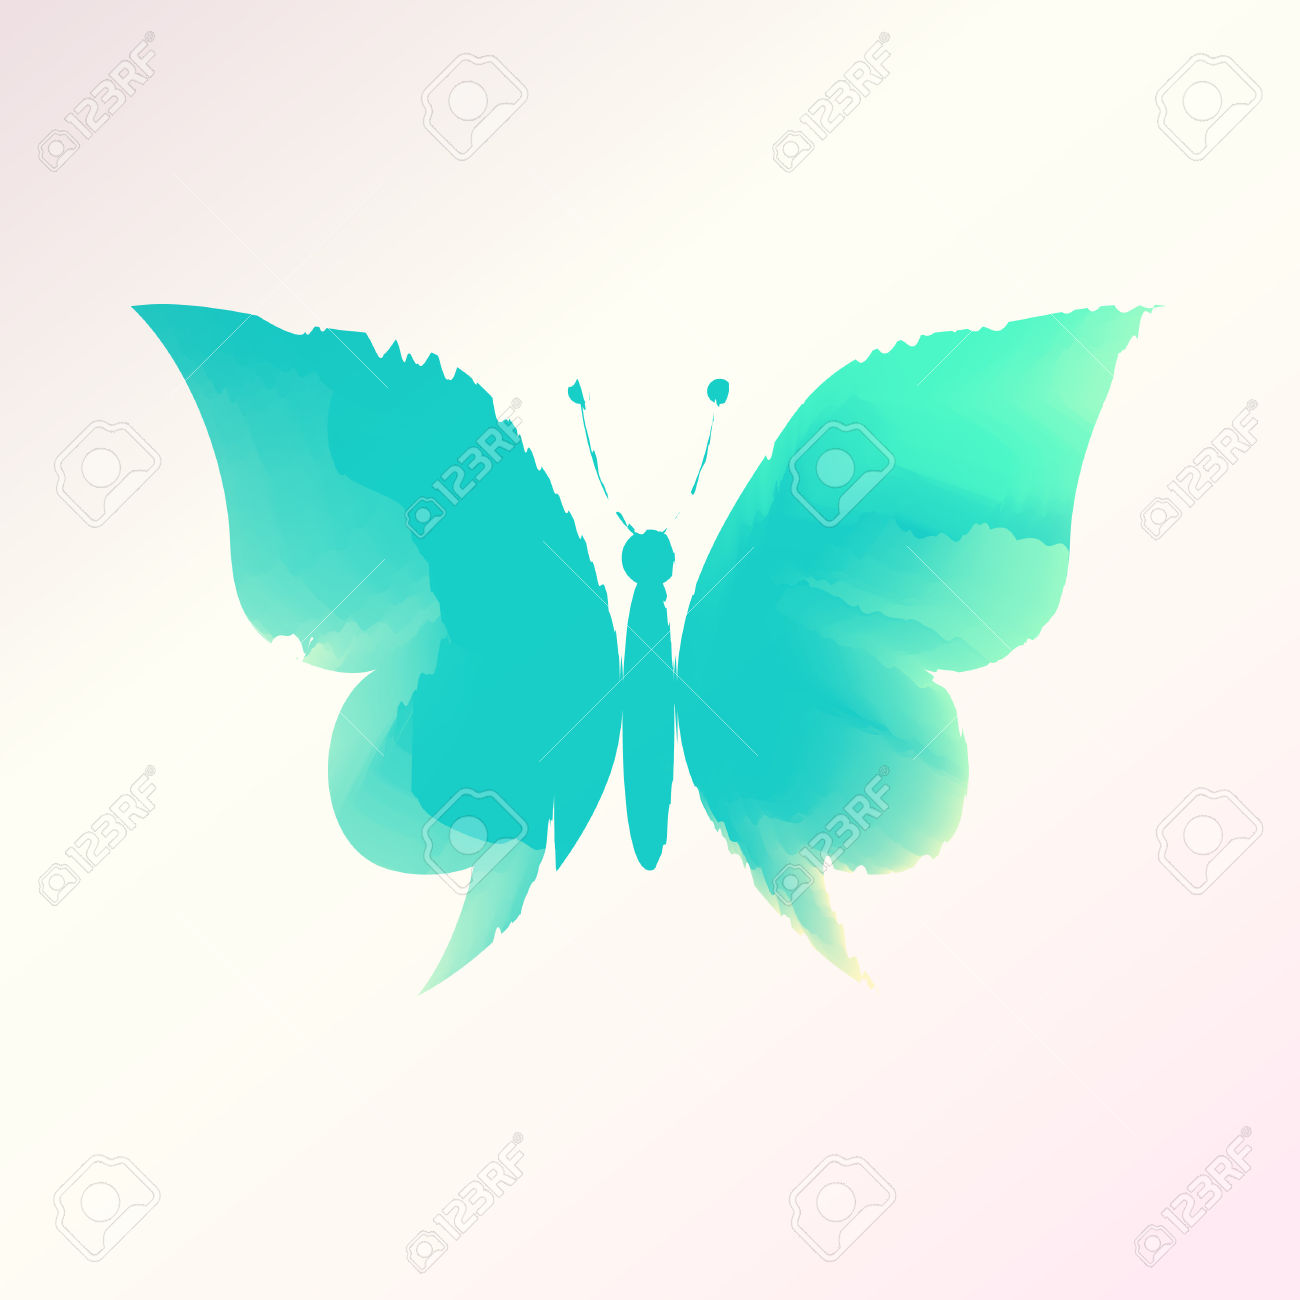 Watercolor butterfly free clipart image free stock Watercolor Butterfly Vector, Eps 10 Royalty Free Cliparts, Vectors ... image free stock